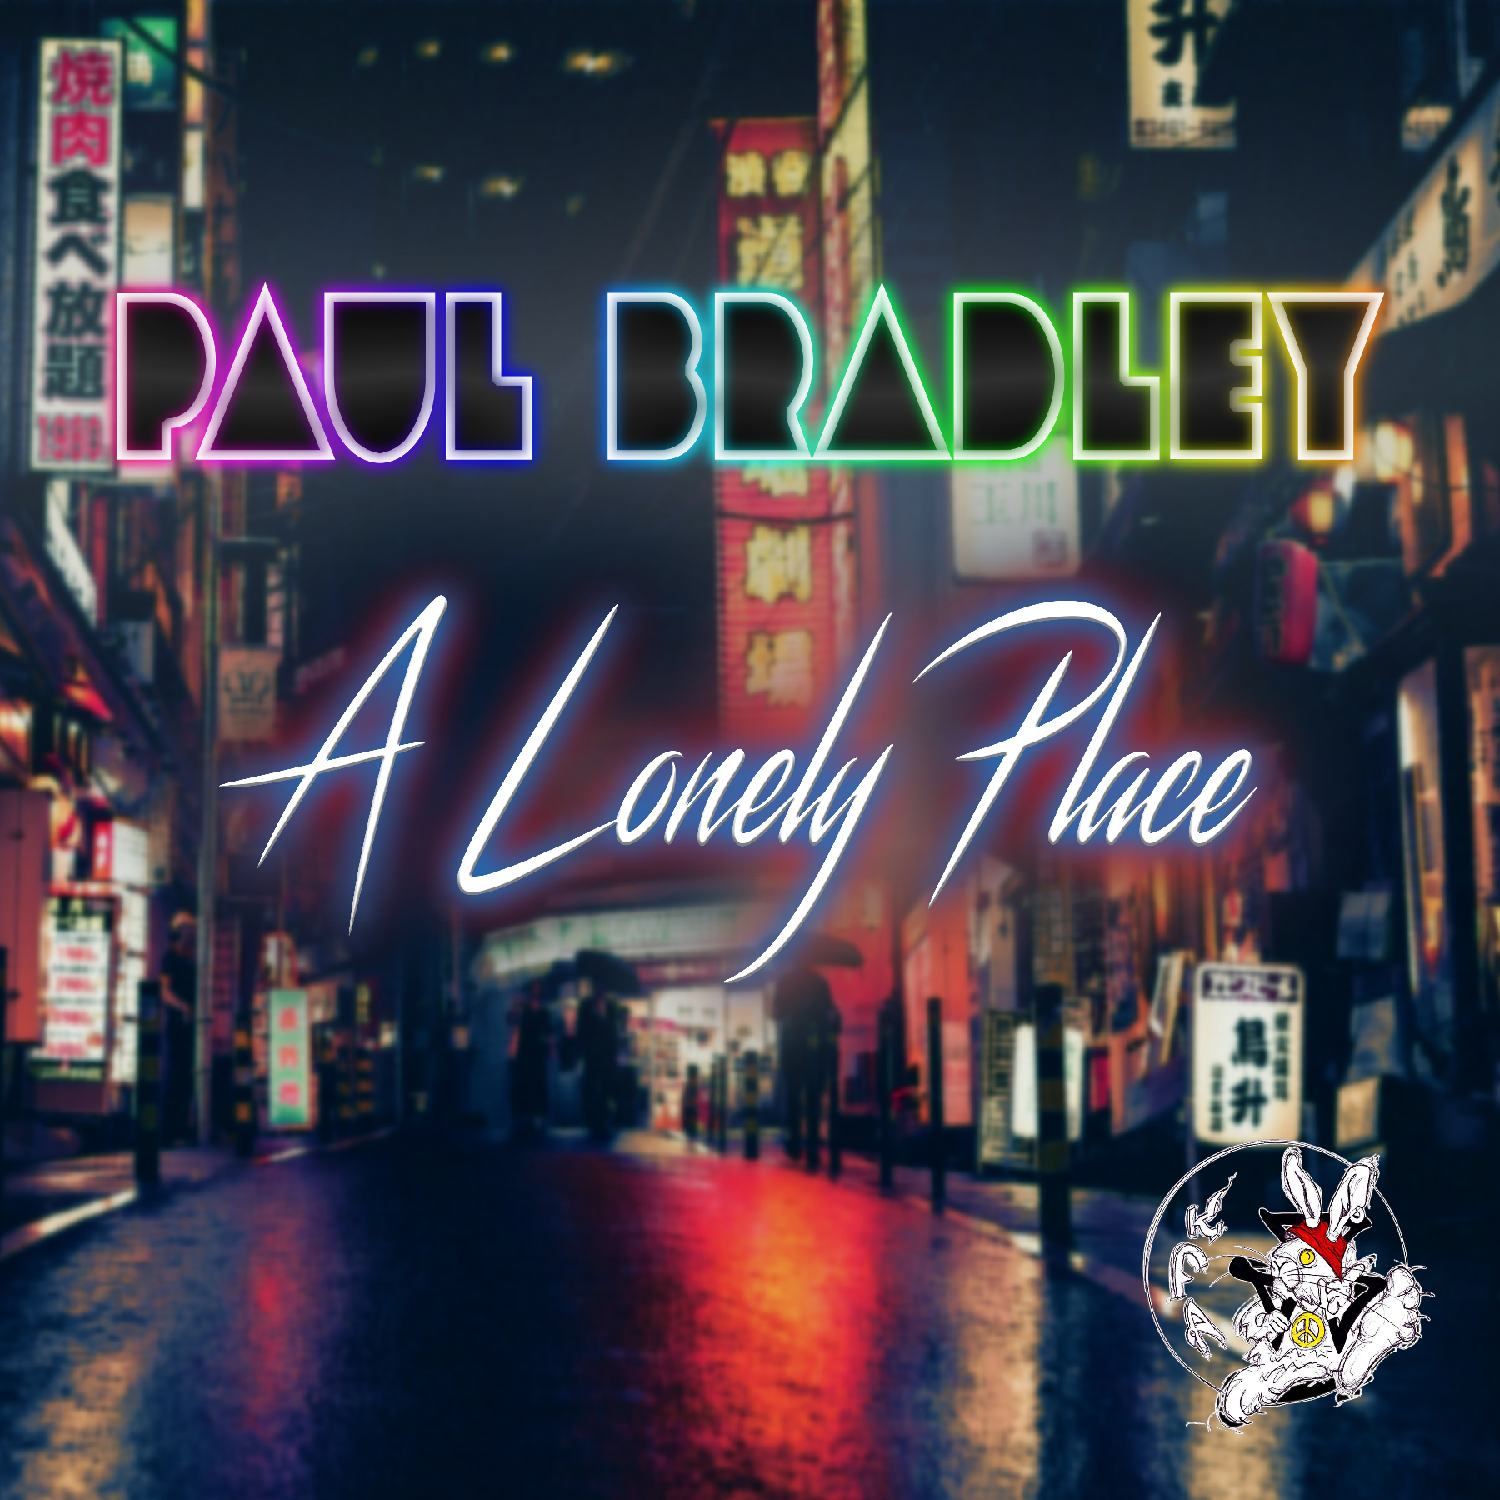 [KFA103] Paul Bradley - A Lonely Place EP (Digital Only)